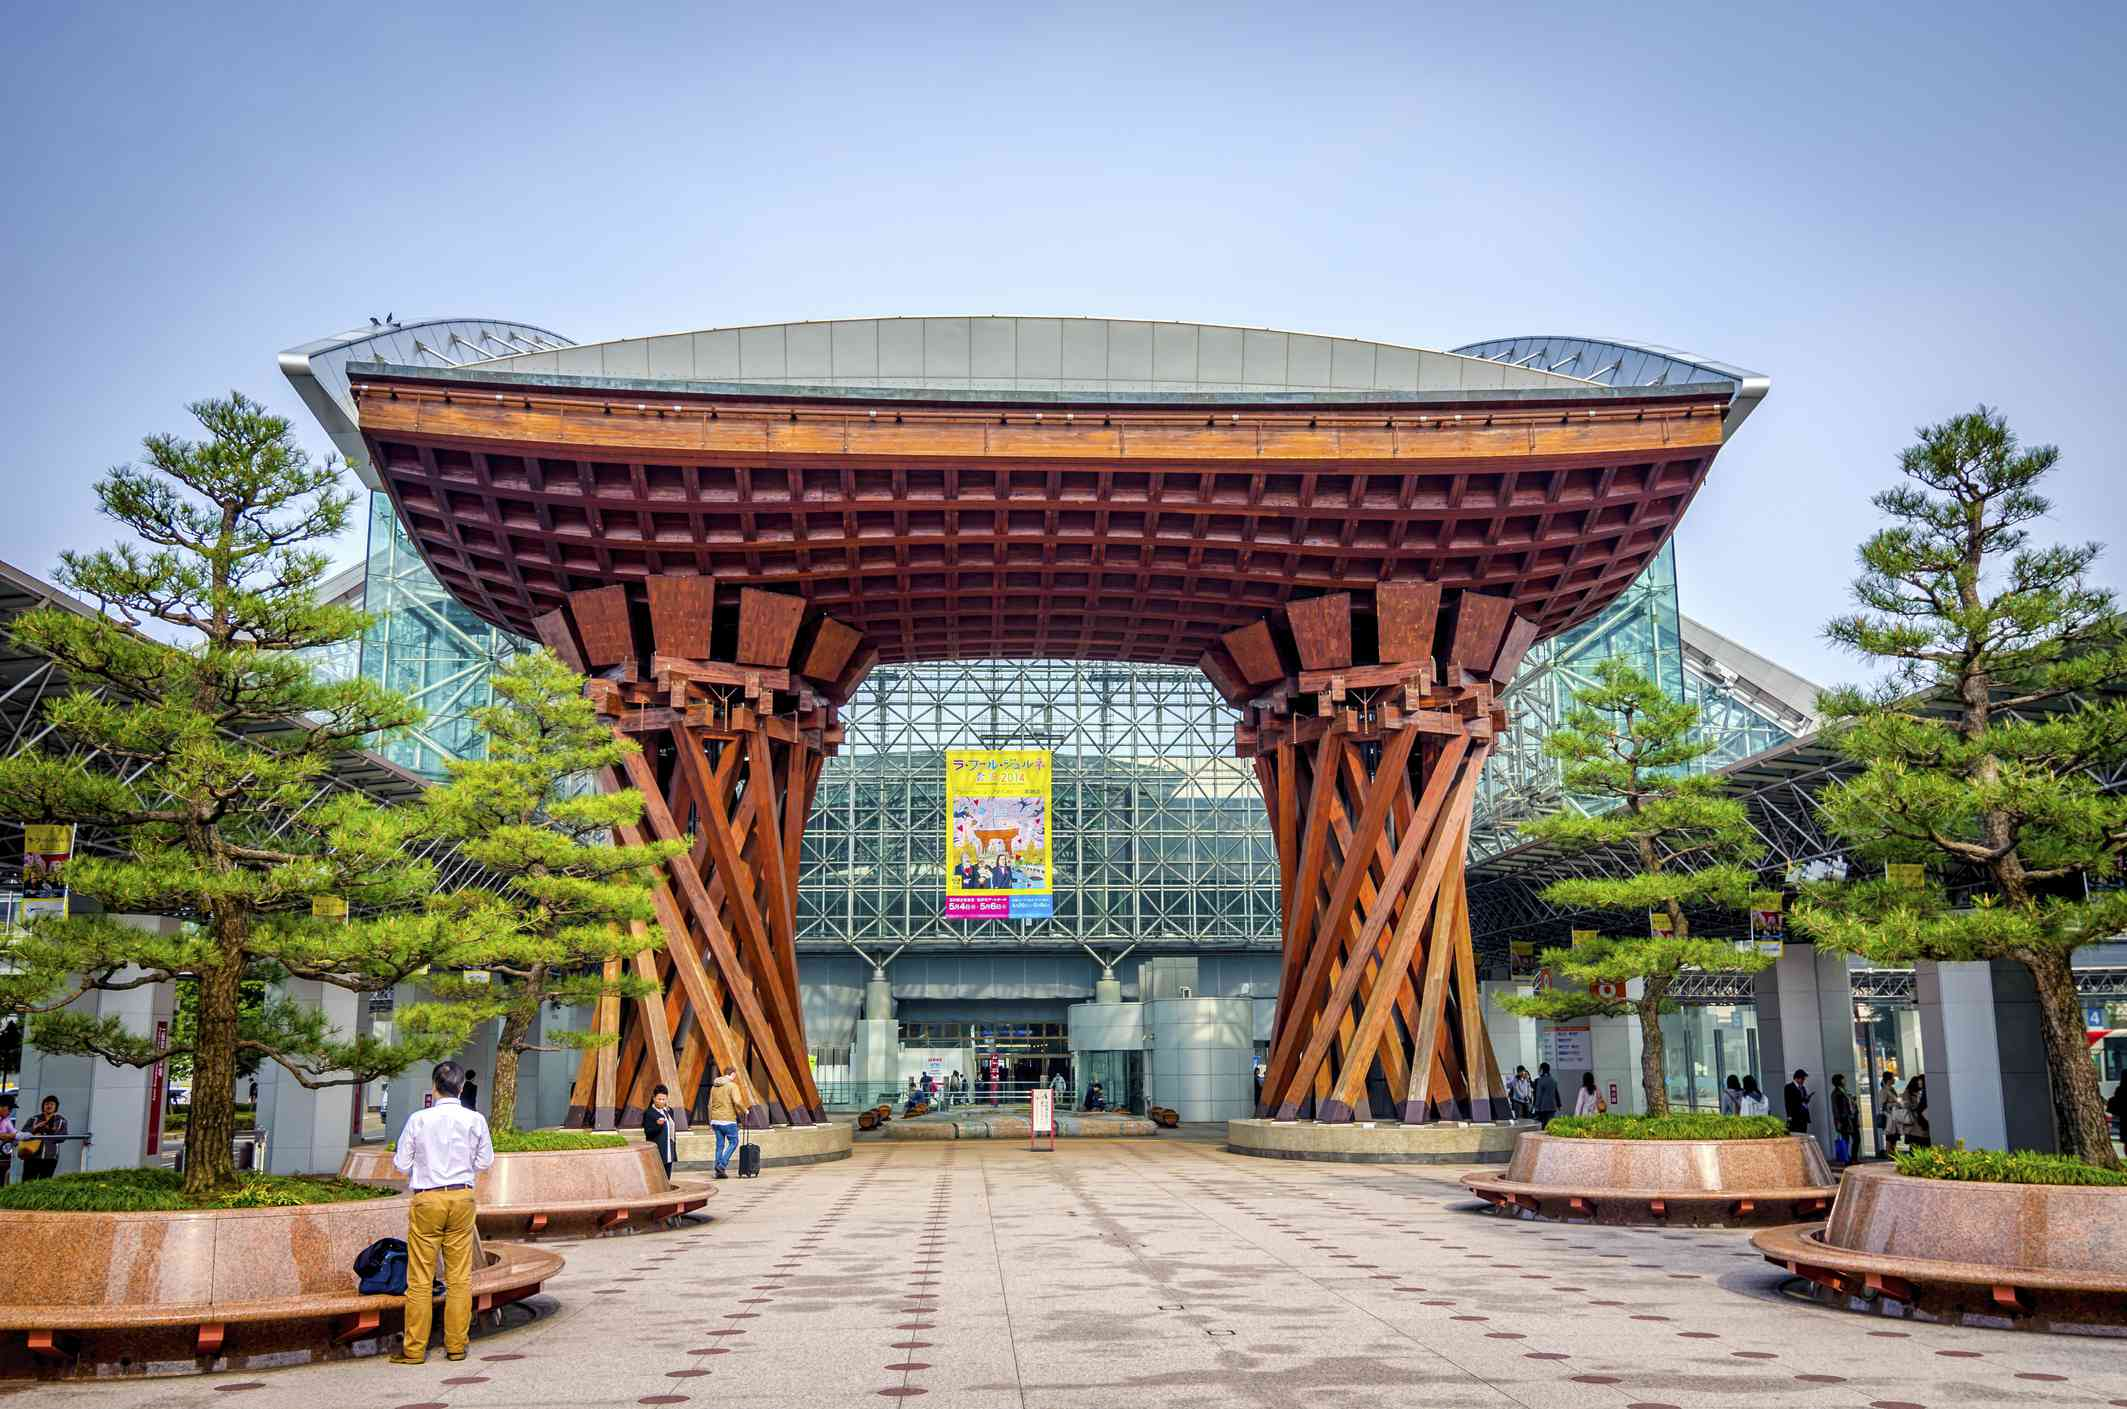 Tsuzumimon located at East entrance to the JR Kanazawa Station. The gate's architecture draws its inspiration from a Japanese traditional drum called tsuzumi